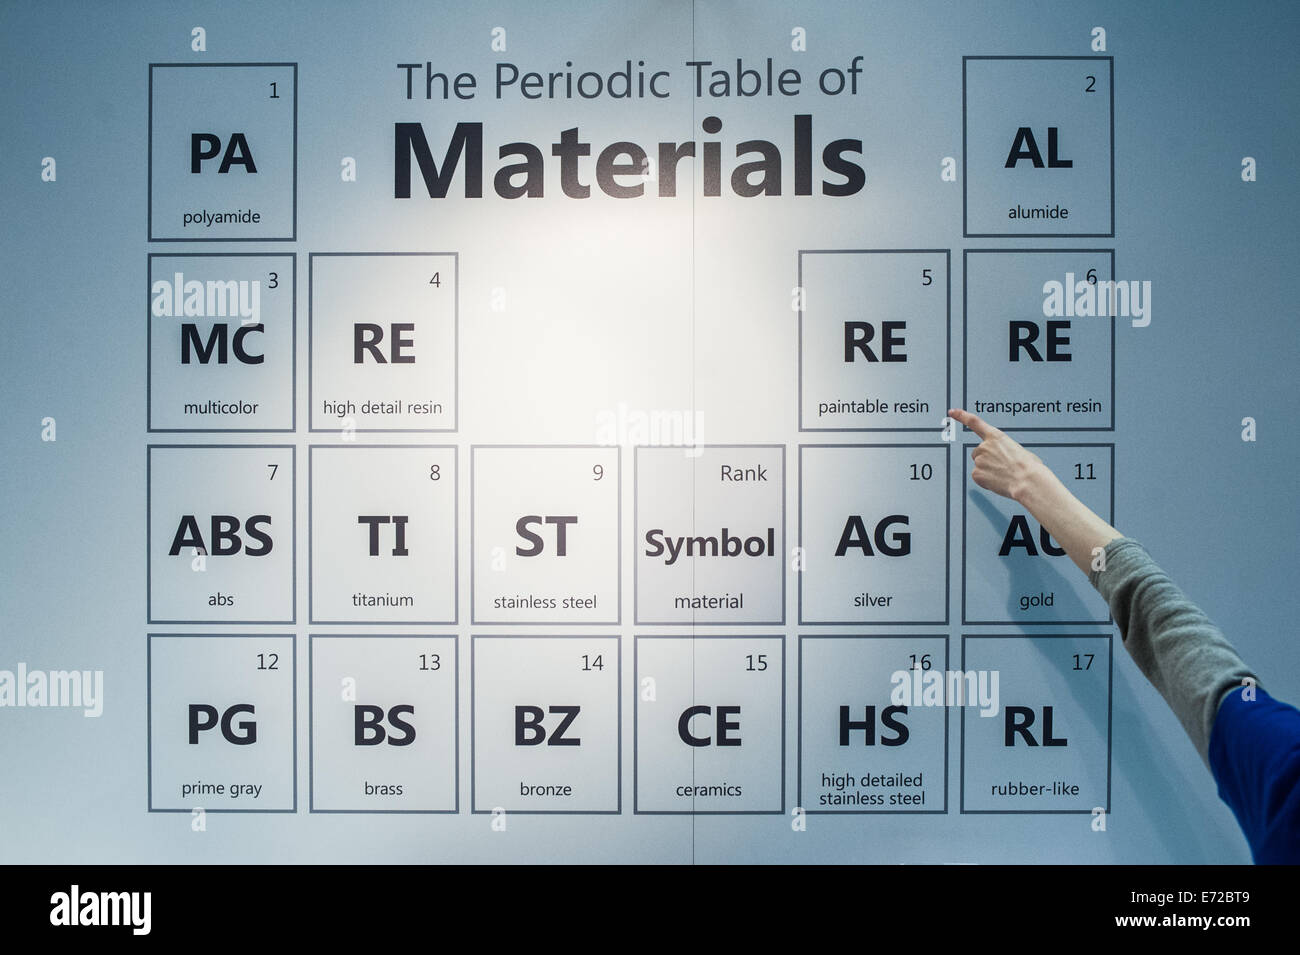 Periodic Table Of Materials Stock Photos Periodic Table Of